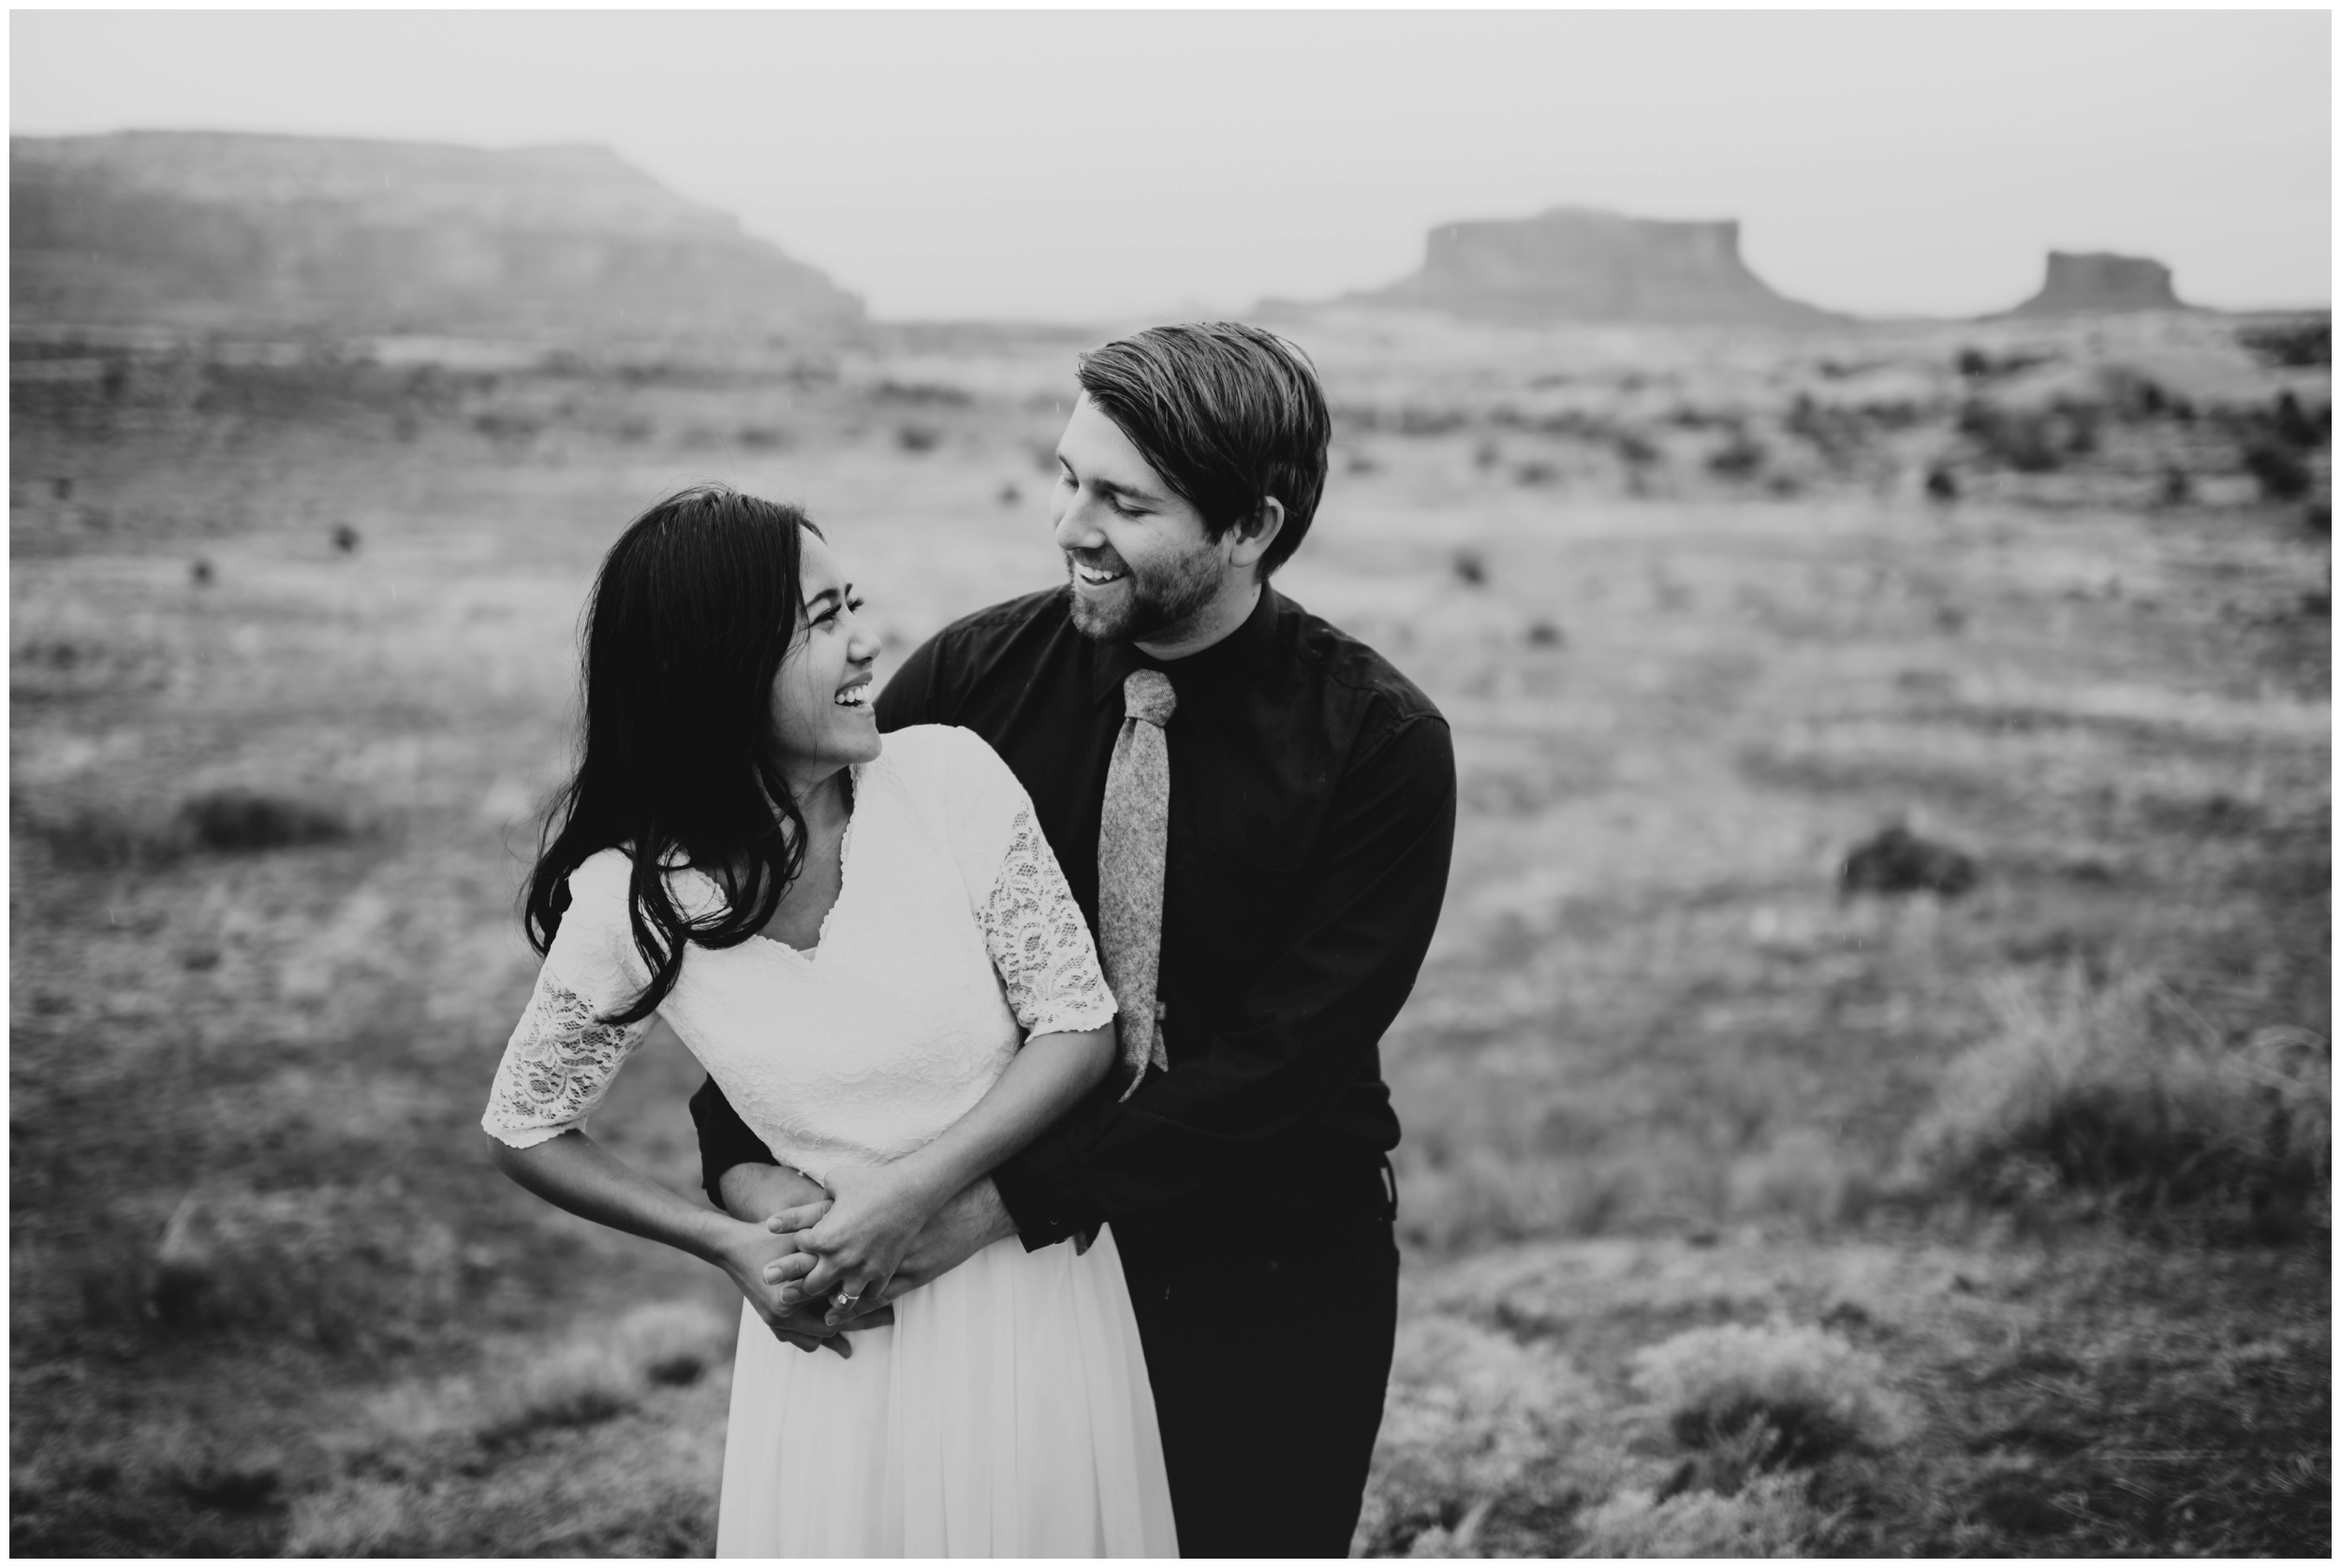 Adorable couple laughing, natural posing, candid photos |Moab Utah, Photographer www.riversandroadsphotography.com